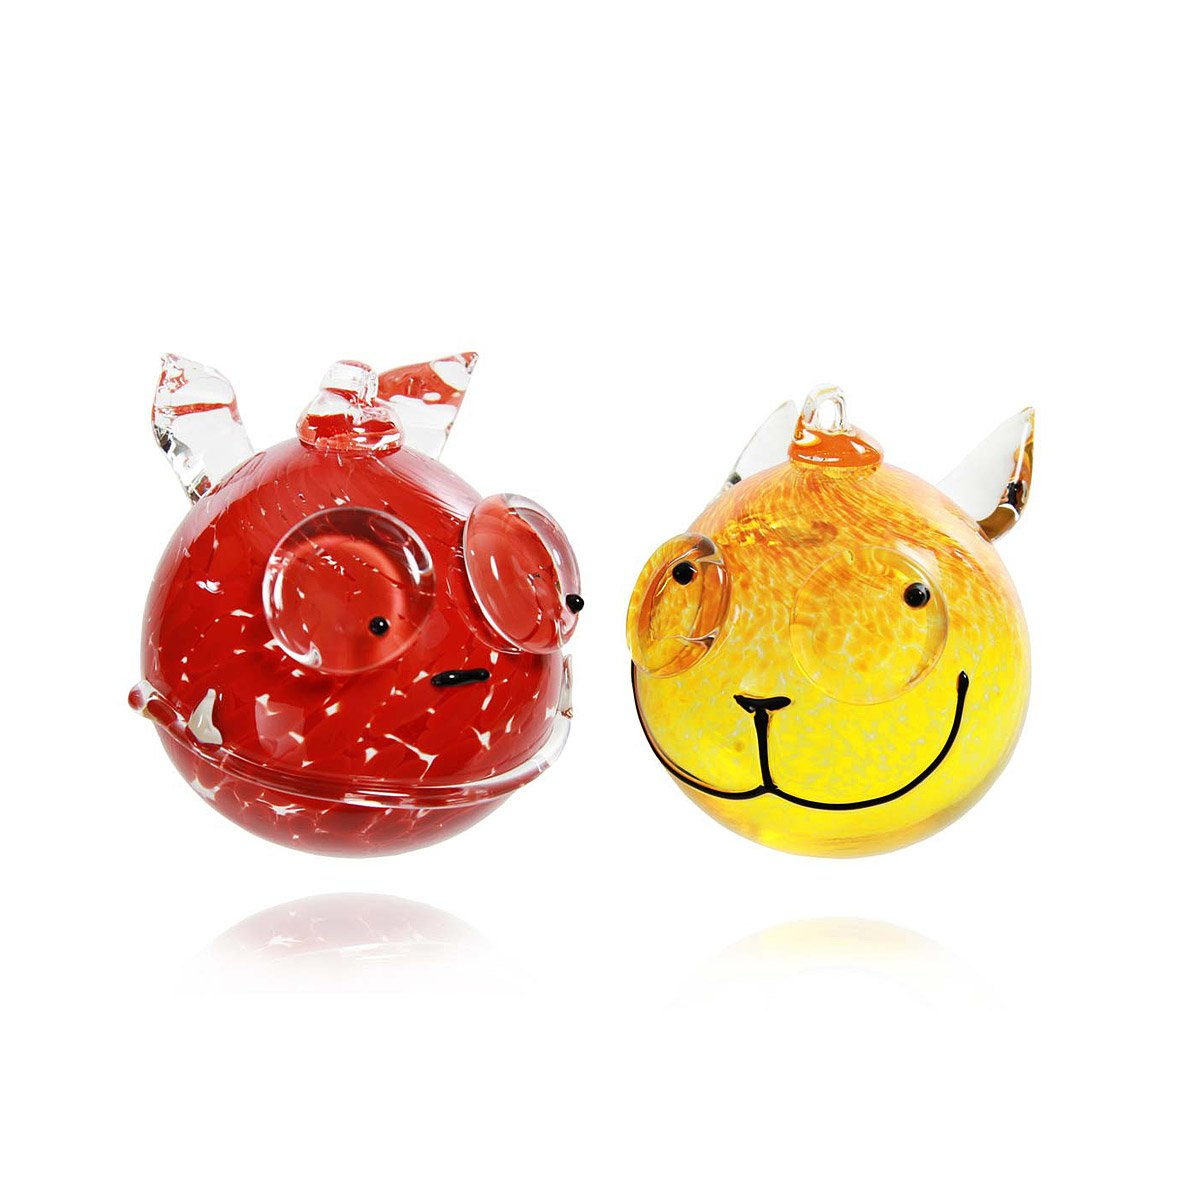 Glass animal ornaments - Glass Animal Ornaments 1 Thumbnail